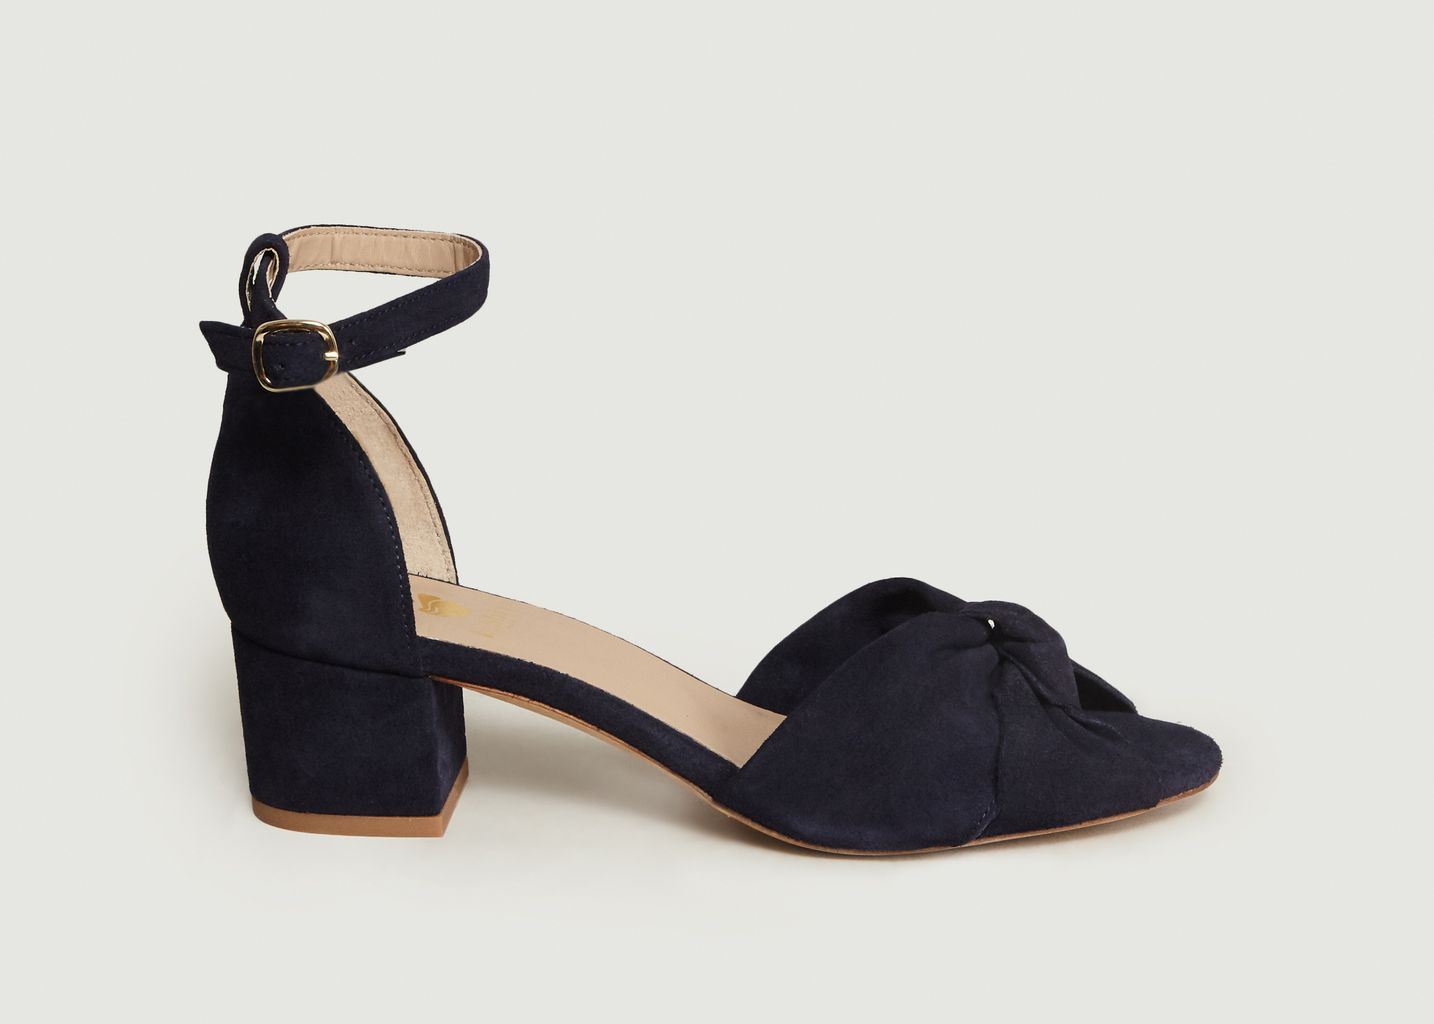 Sandales En Nubuck La Charmante - Bobbies Paris